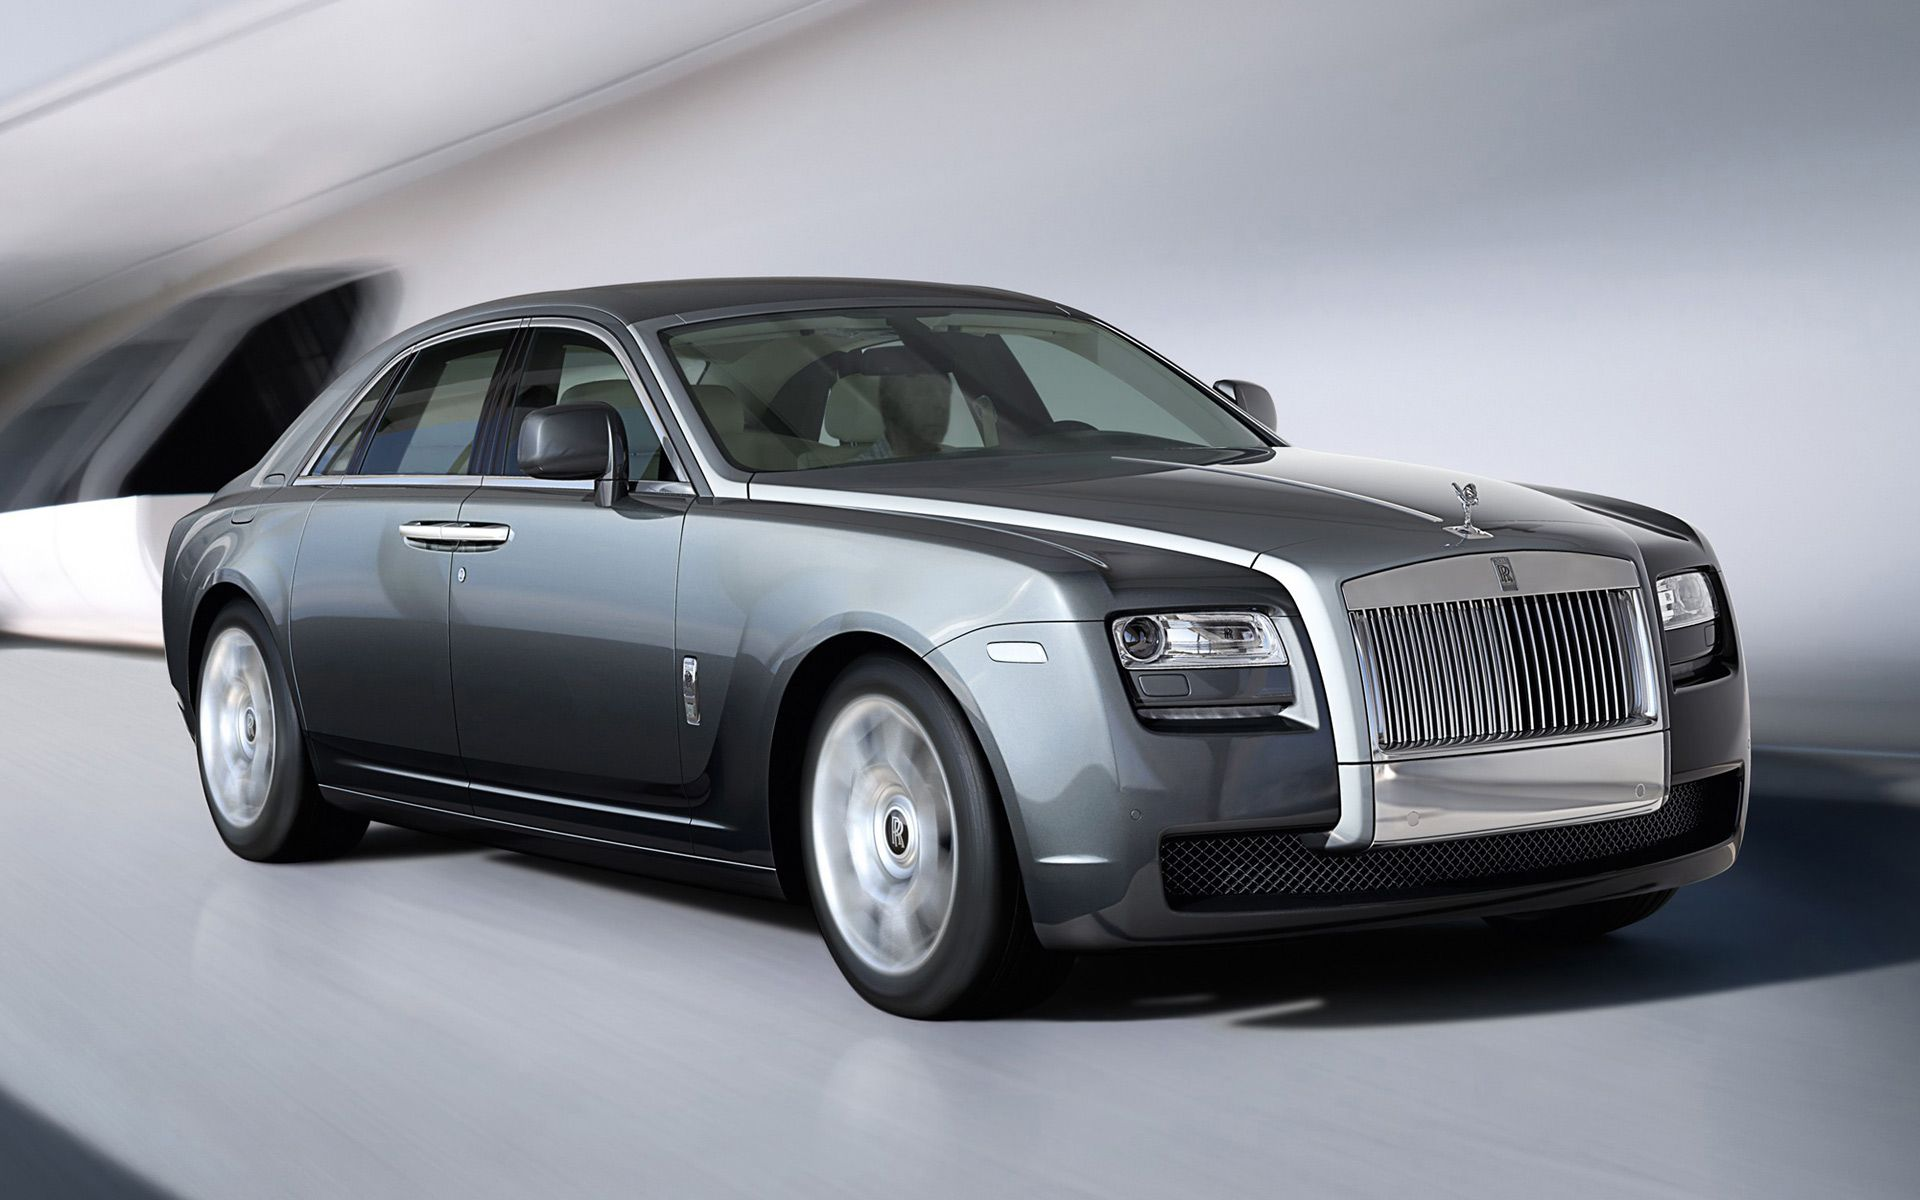 Rolls Royce Ghost Another dream cars For Raul